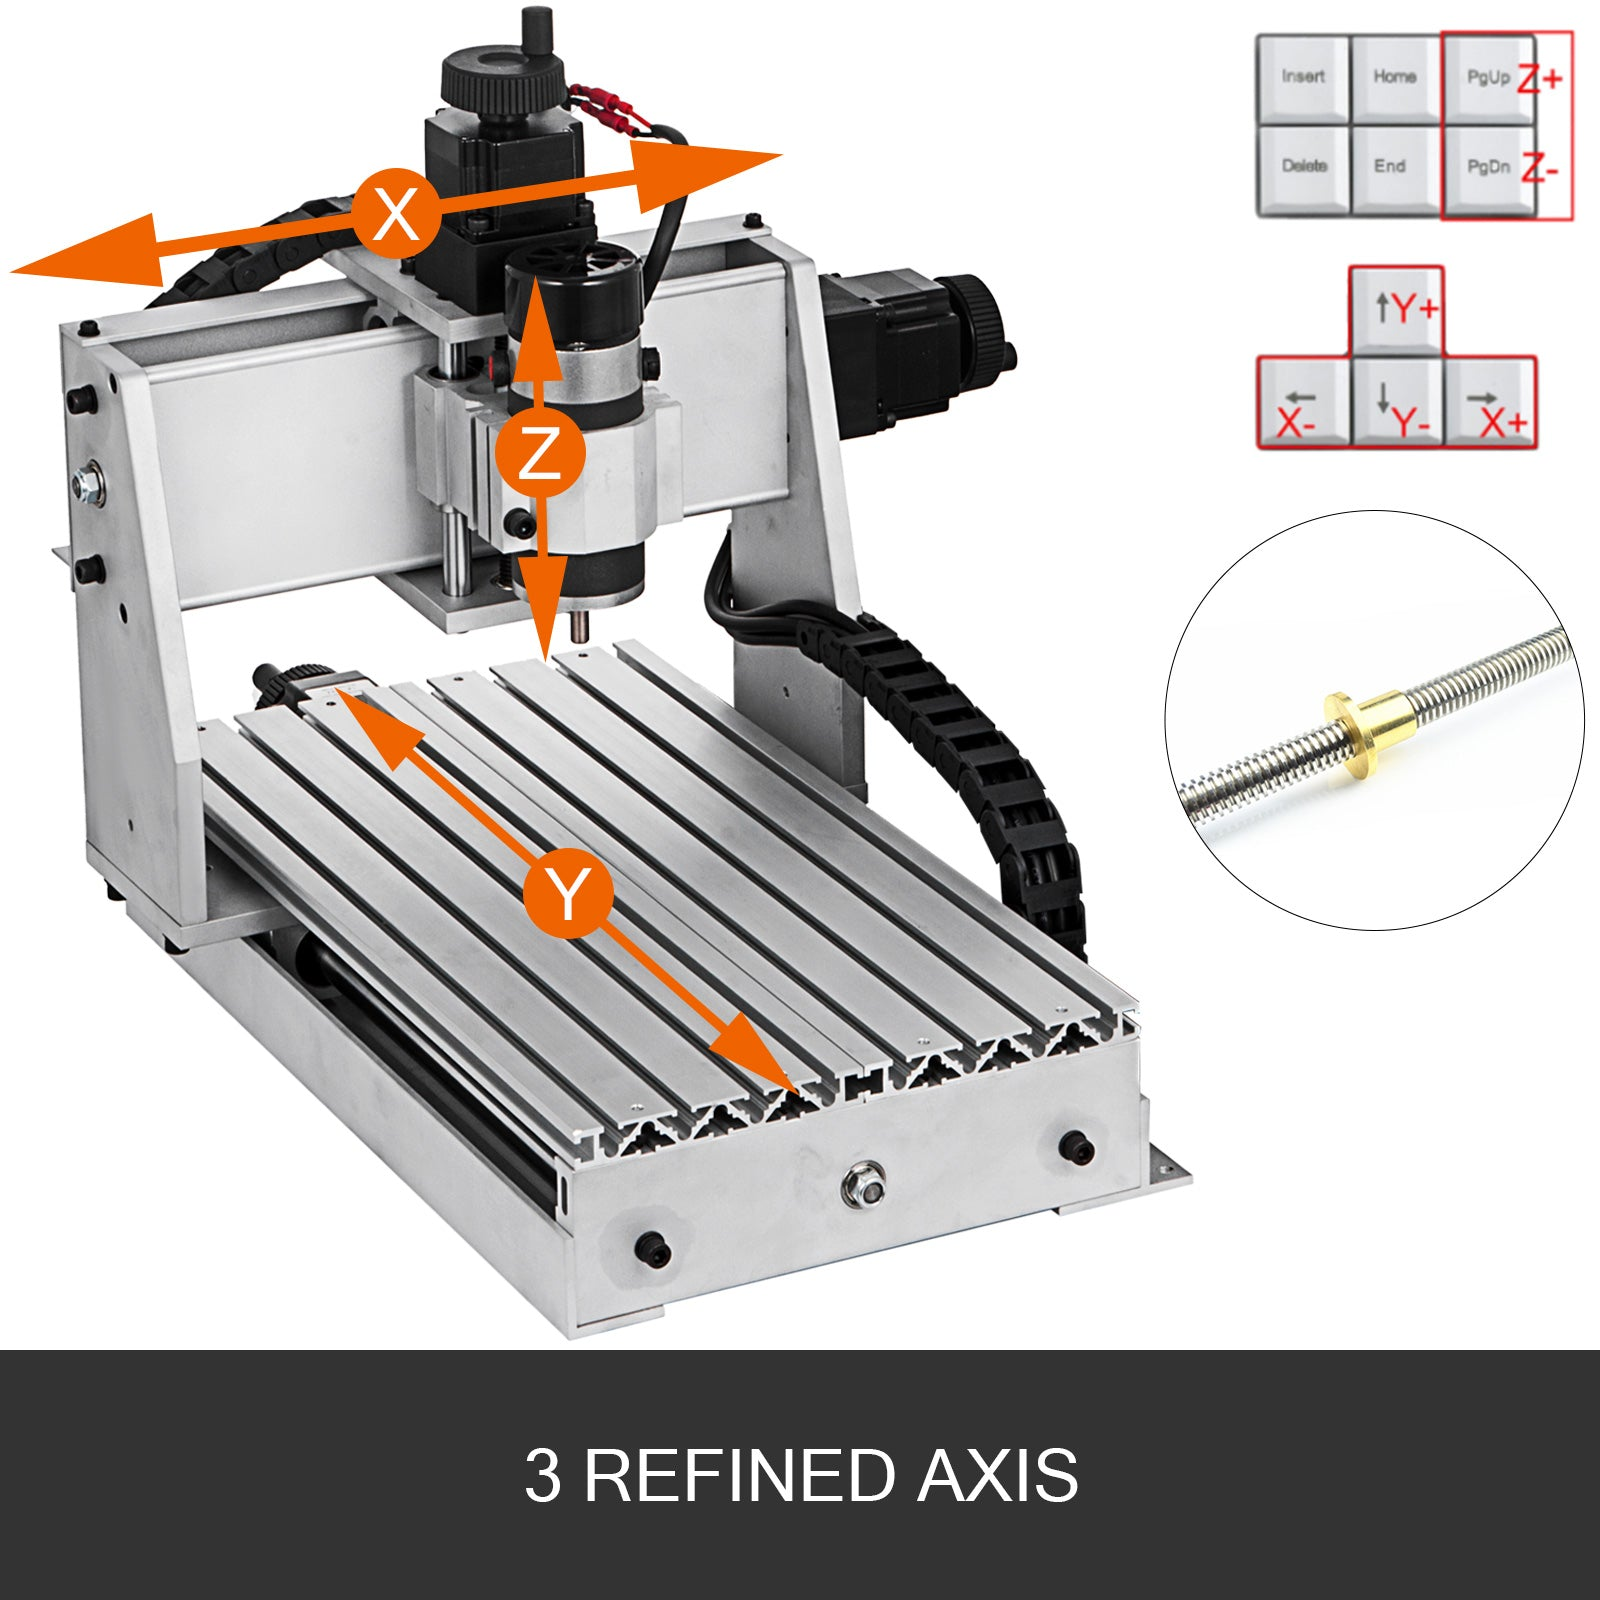 3 Axis Cnc Router 3020 Engraving Milling Machine Woodworking Chrome Plate Shaft